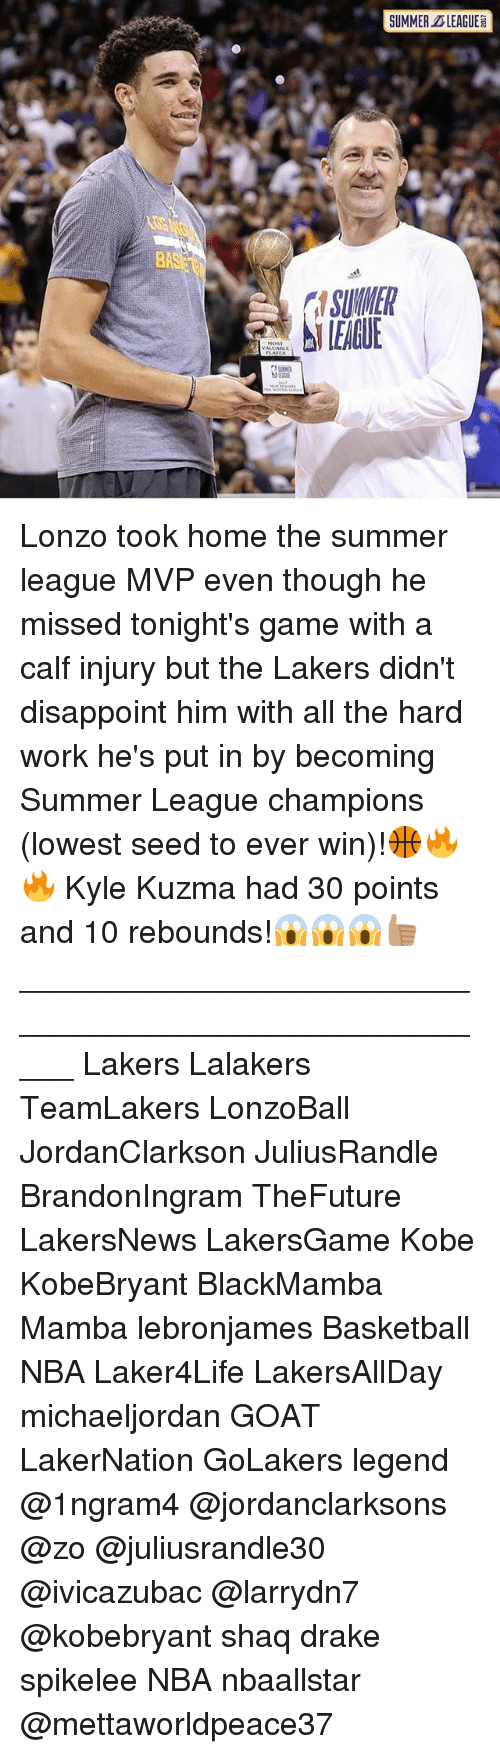 hardly working: SUMMER LEAGUE  SUMNER  LEAGUE Lonzo took home the summer league MVP even though he missed tonight's game with a calf injury but the Lakers didn't disappoint him with all the hard work he's put in by becoming Summer League champions (lowest seed to ever win)!🏀🔥🔥 Kyle Kuzma had 30 points and 10 rebounds!😱😱😱👍🏽 _____________________________________________________ Lakers Lalakers TeamLakers LonzoBall JordanClarkson JuliusRandle BrandonIngram TheFuture LakersNews LakersGame Kobe KobeBryant BlackMamba Mamba lebronjames Basketball NBA Laker4Life LakersAllDay michaeljordan GOAT LakerNation GoLakers legend @1ngram4 @jordanclarksons @zo @juliusrandle30 @ivicazubac @larrydn7 @kobebryant shaq drake spikelee NBA nbaallstar @mettaworldpeace37